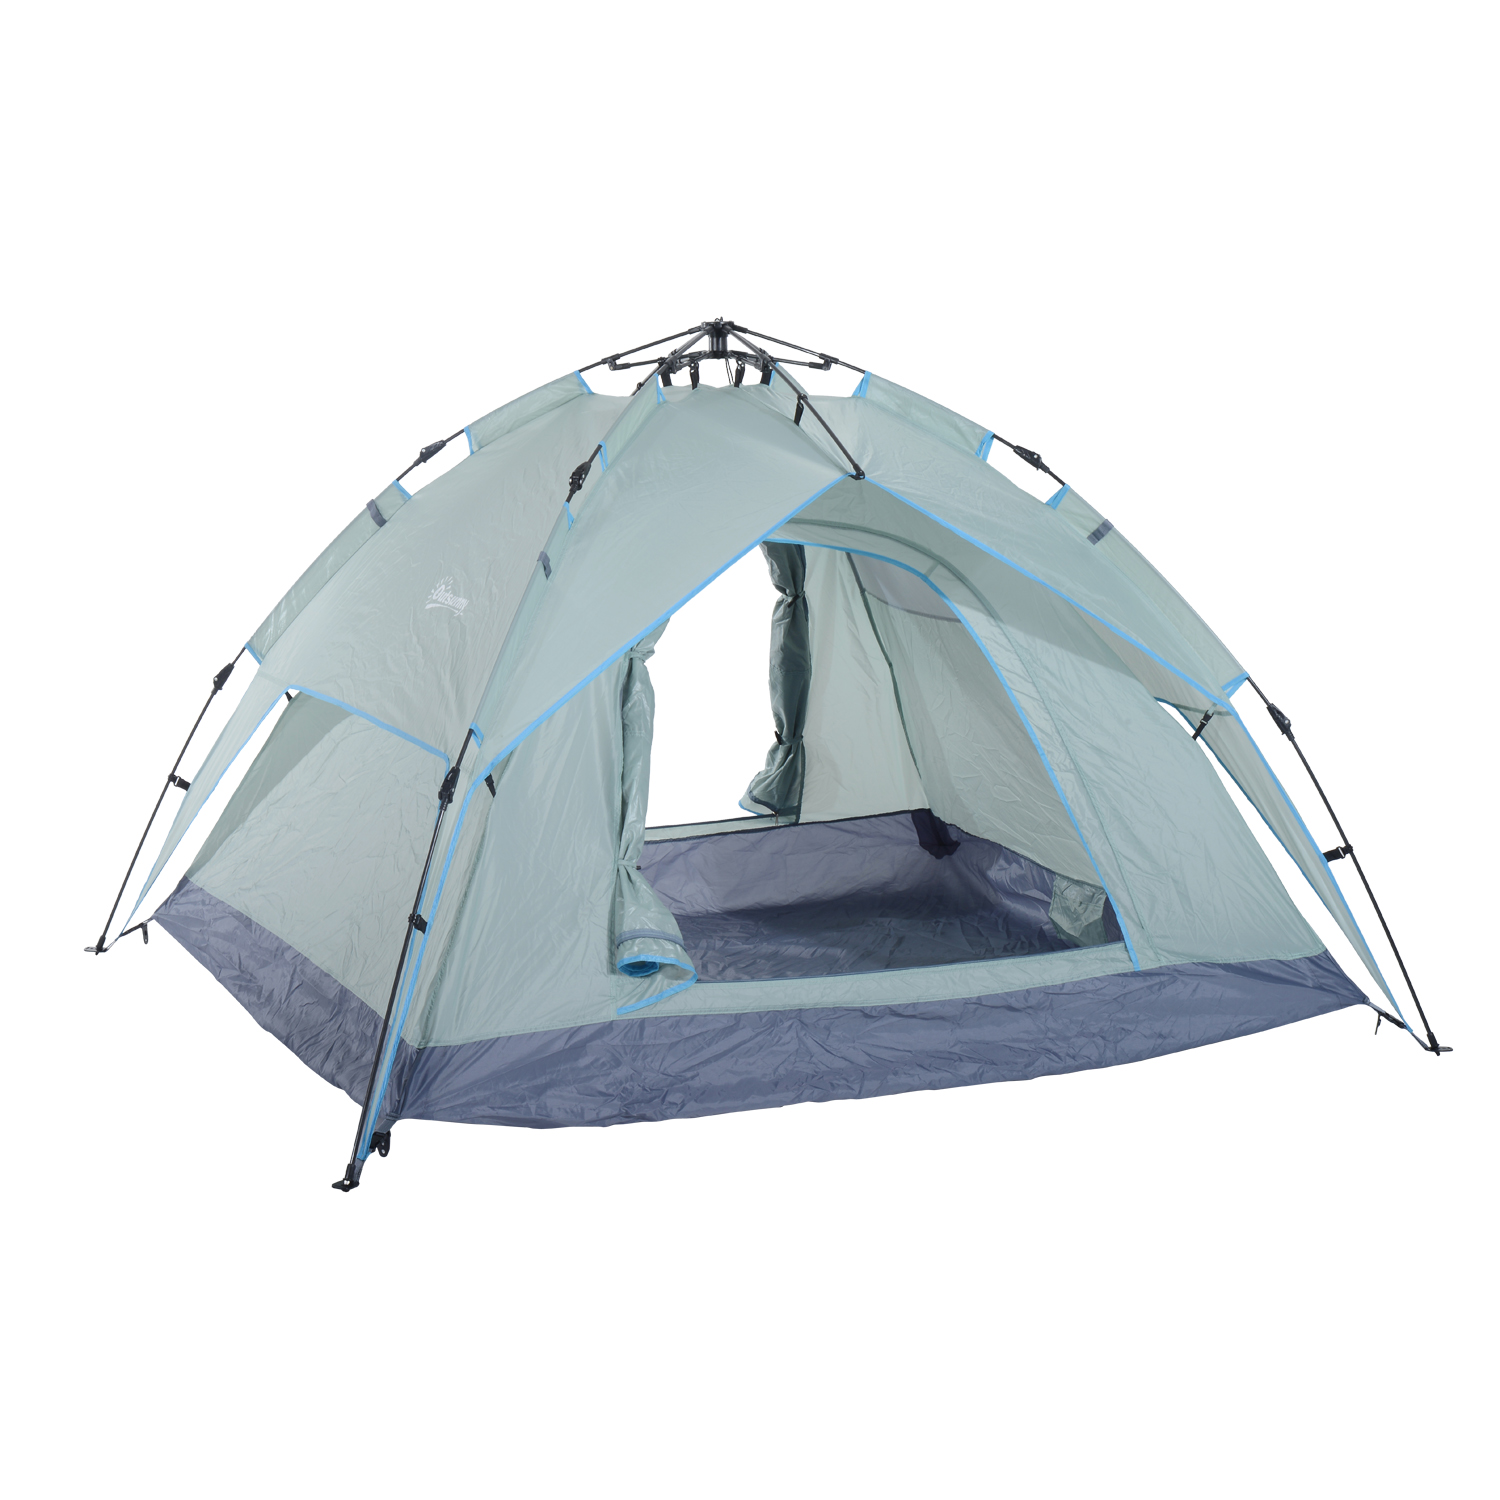 Outsunny 7' X 6' 2person Instant Tent With Rainfly